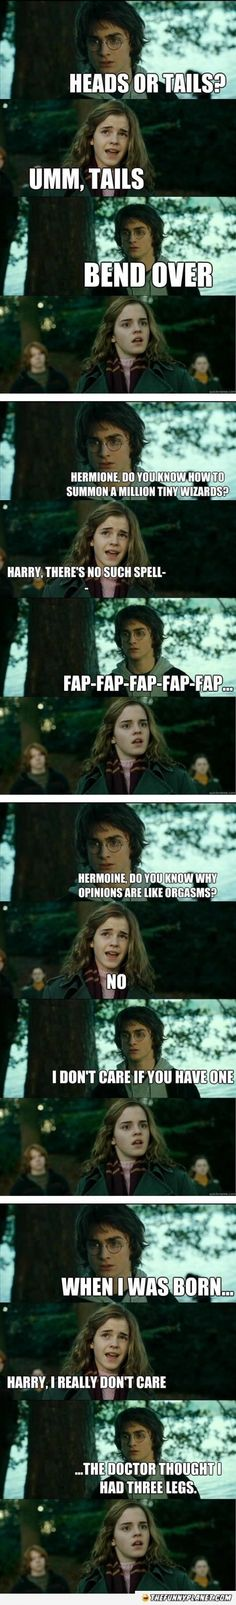 Harry Potter Pick Up Lines. The facial expressions make it better